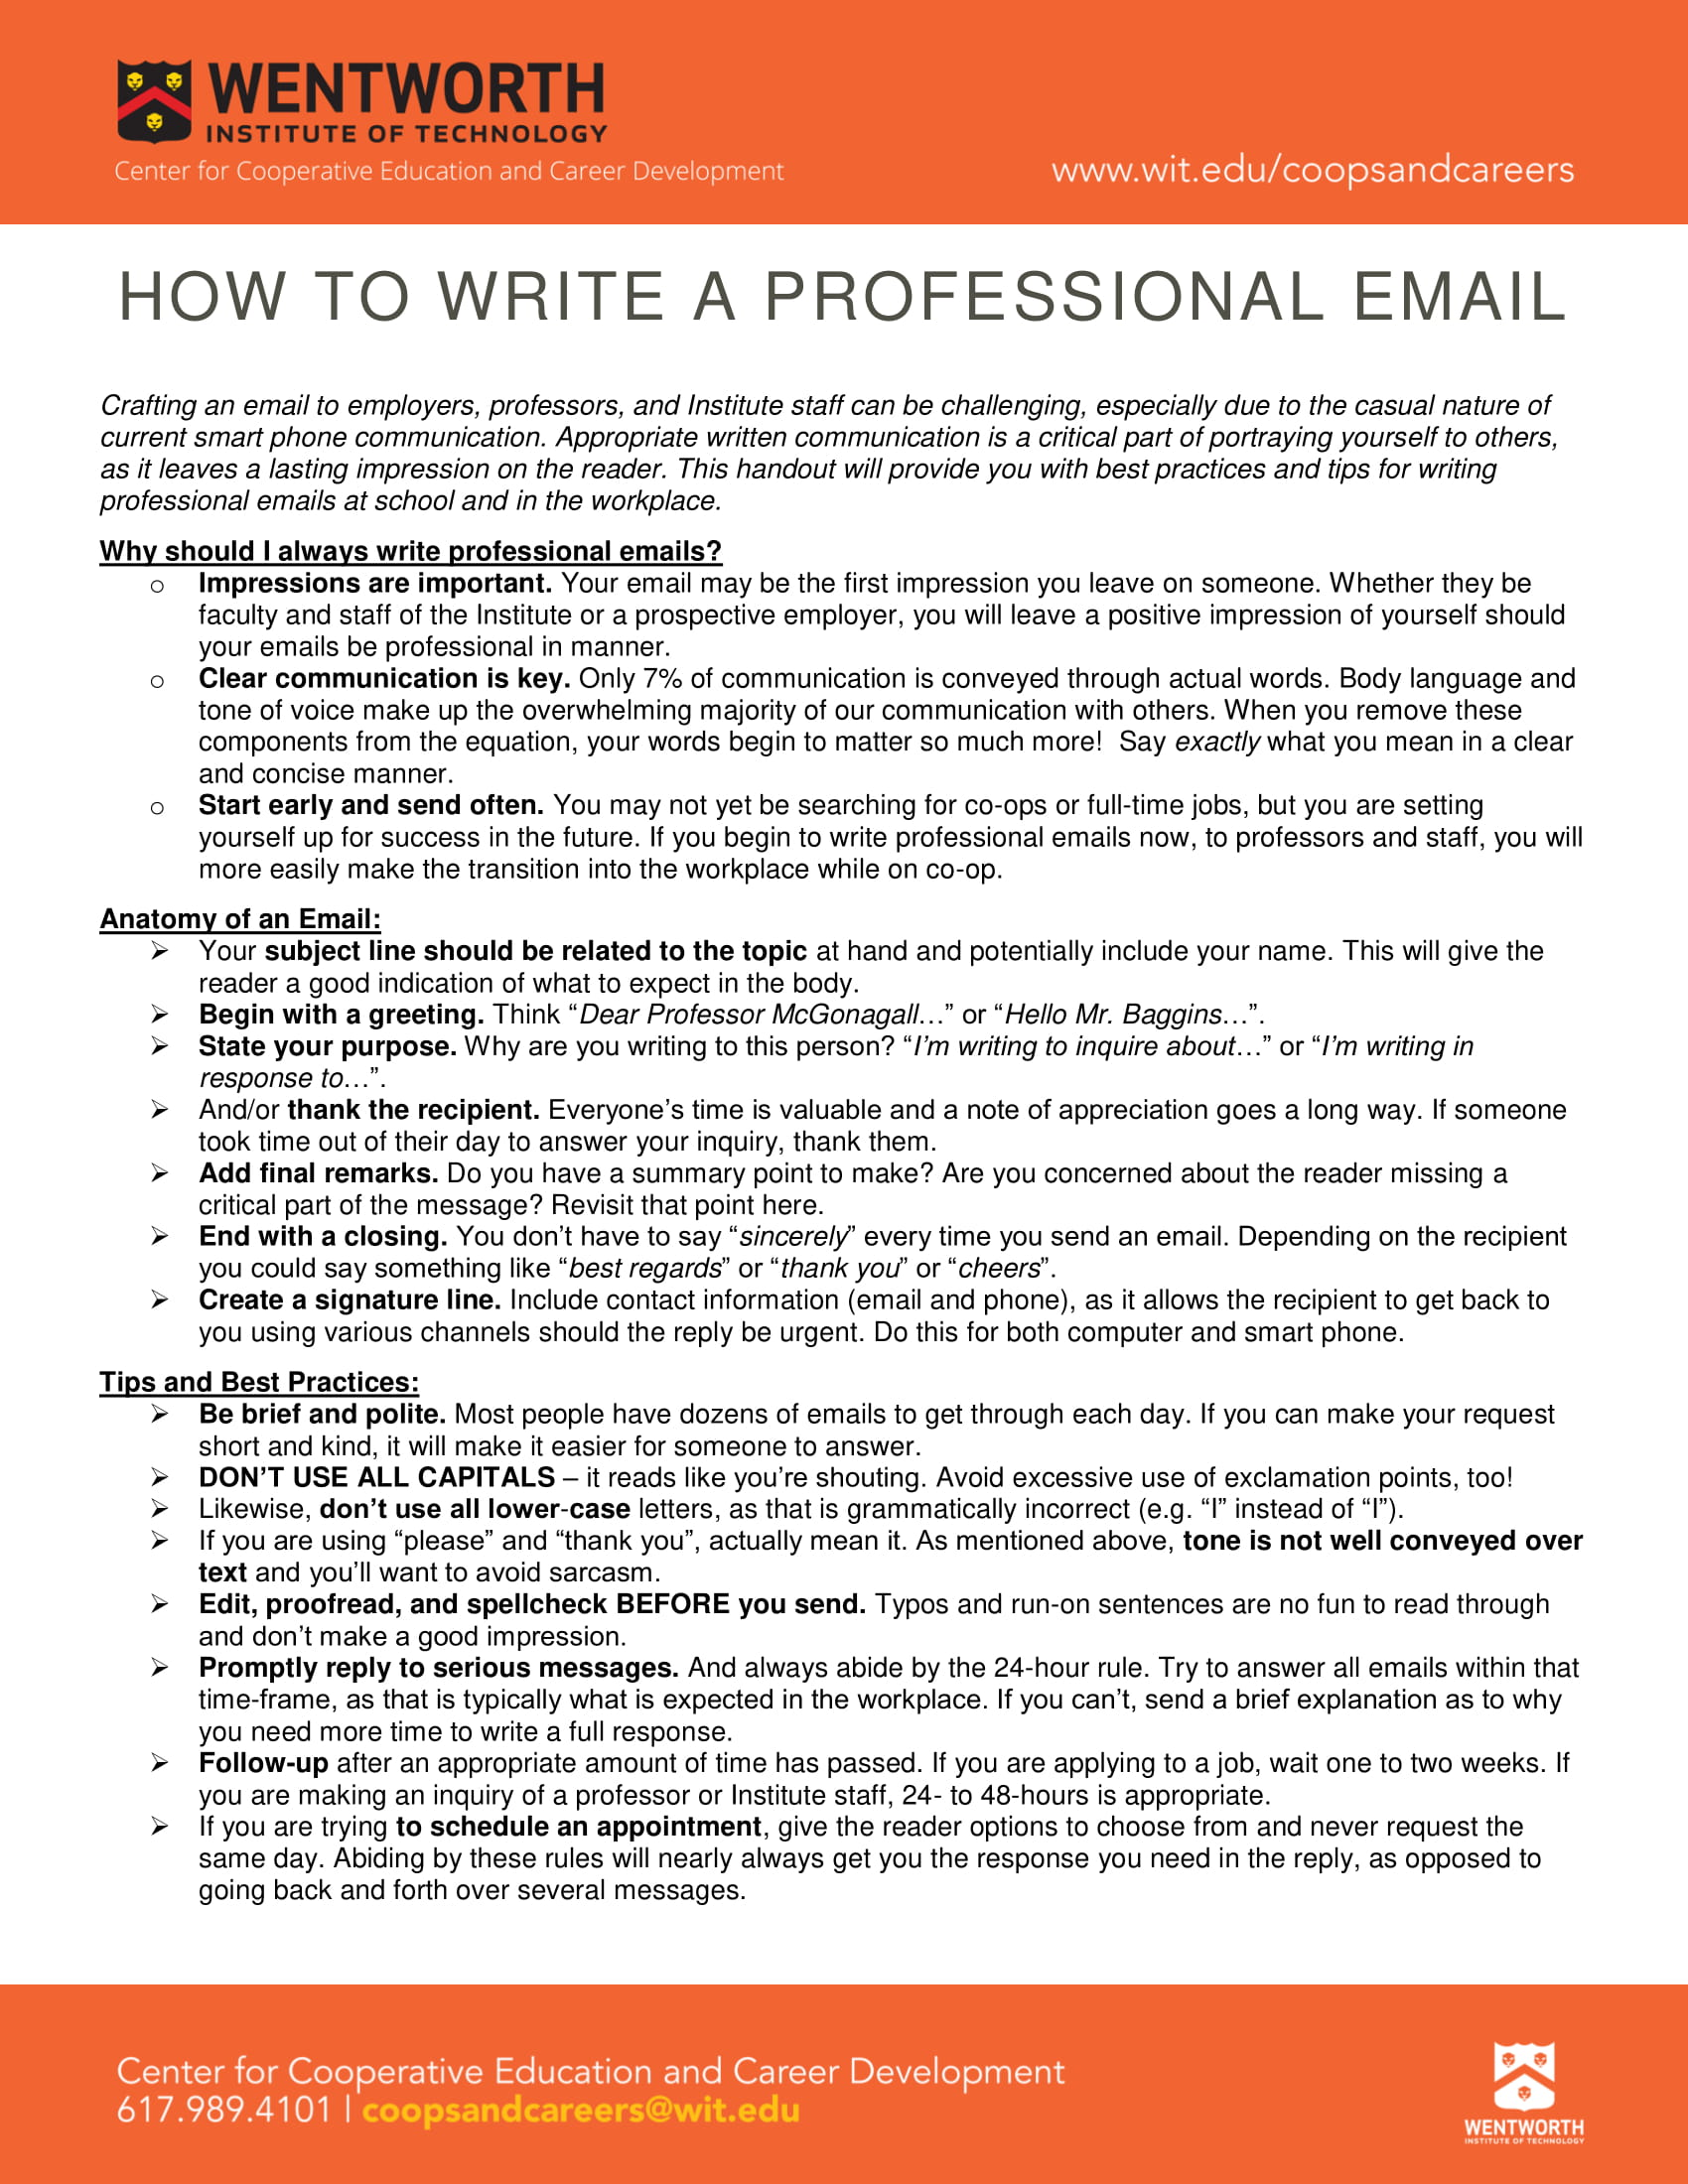 professional email guidelines and example 1